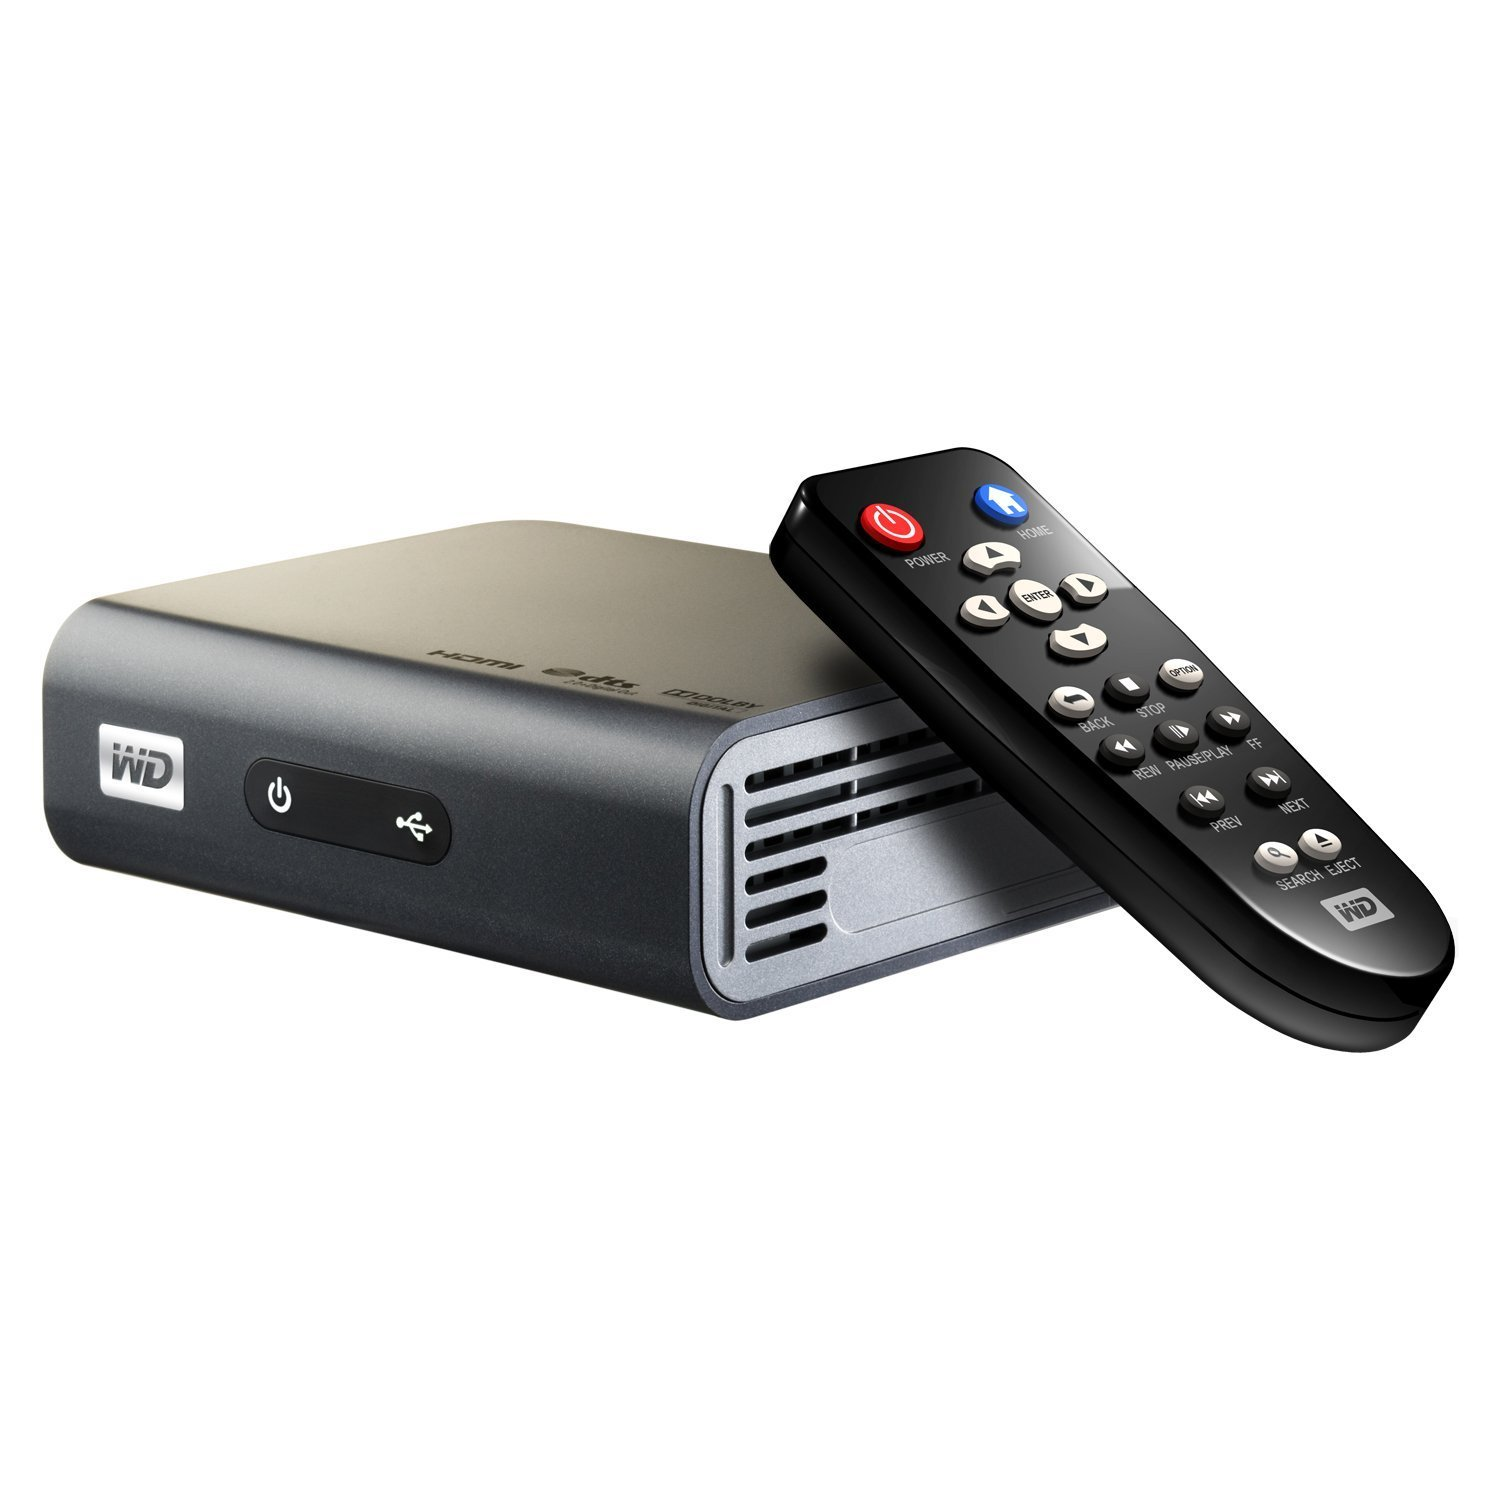 Online Shopping: Western Digital WD TV Live Plus 1080p HD